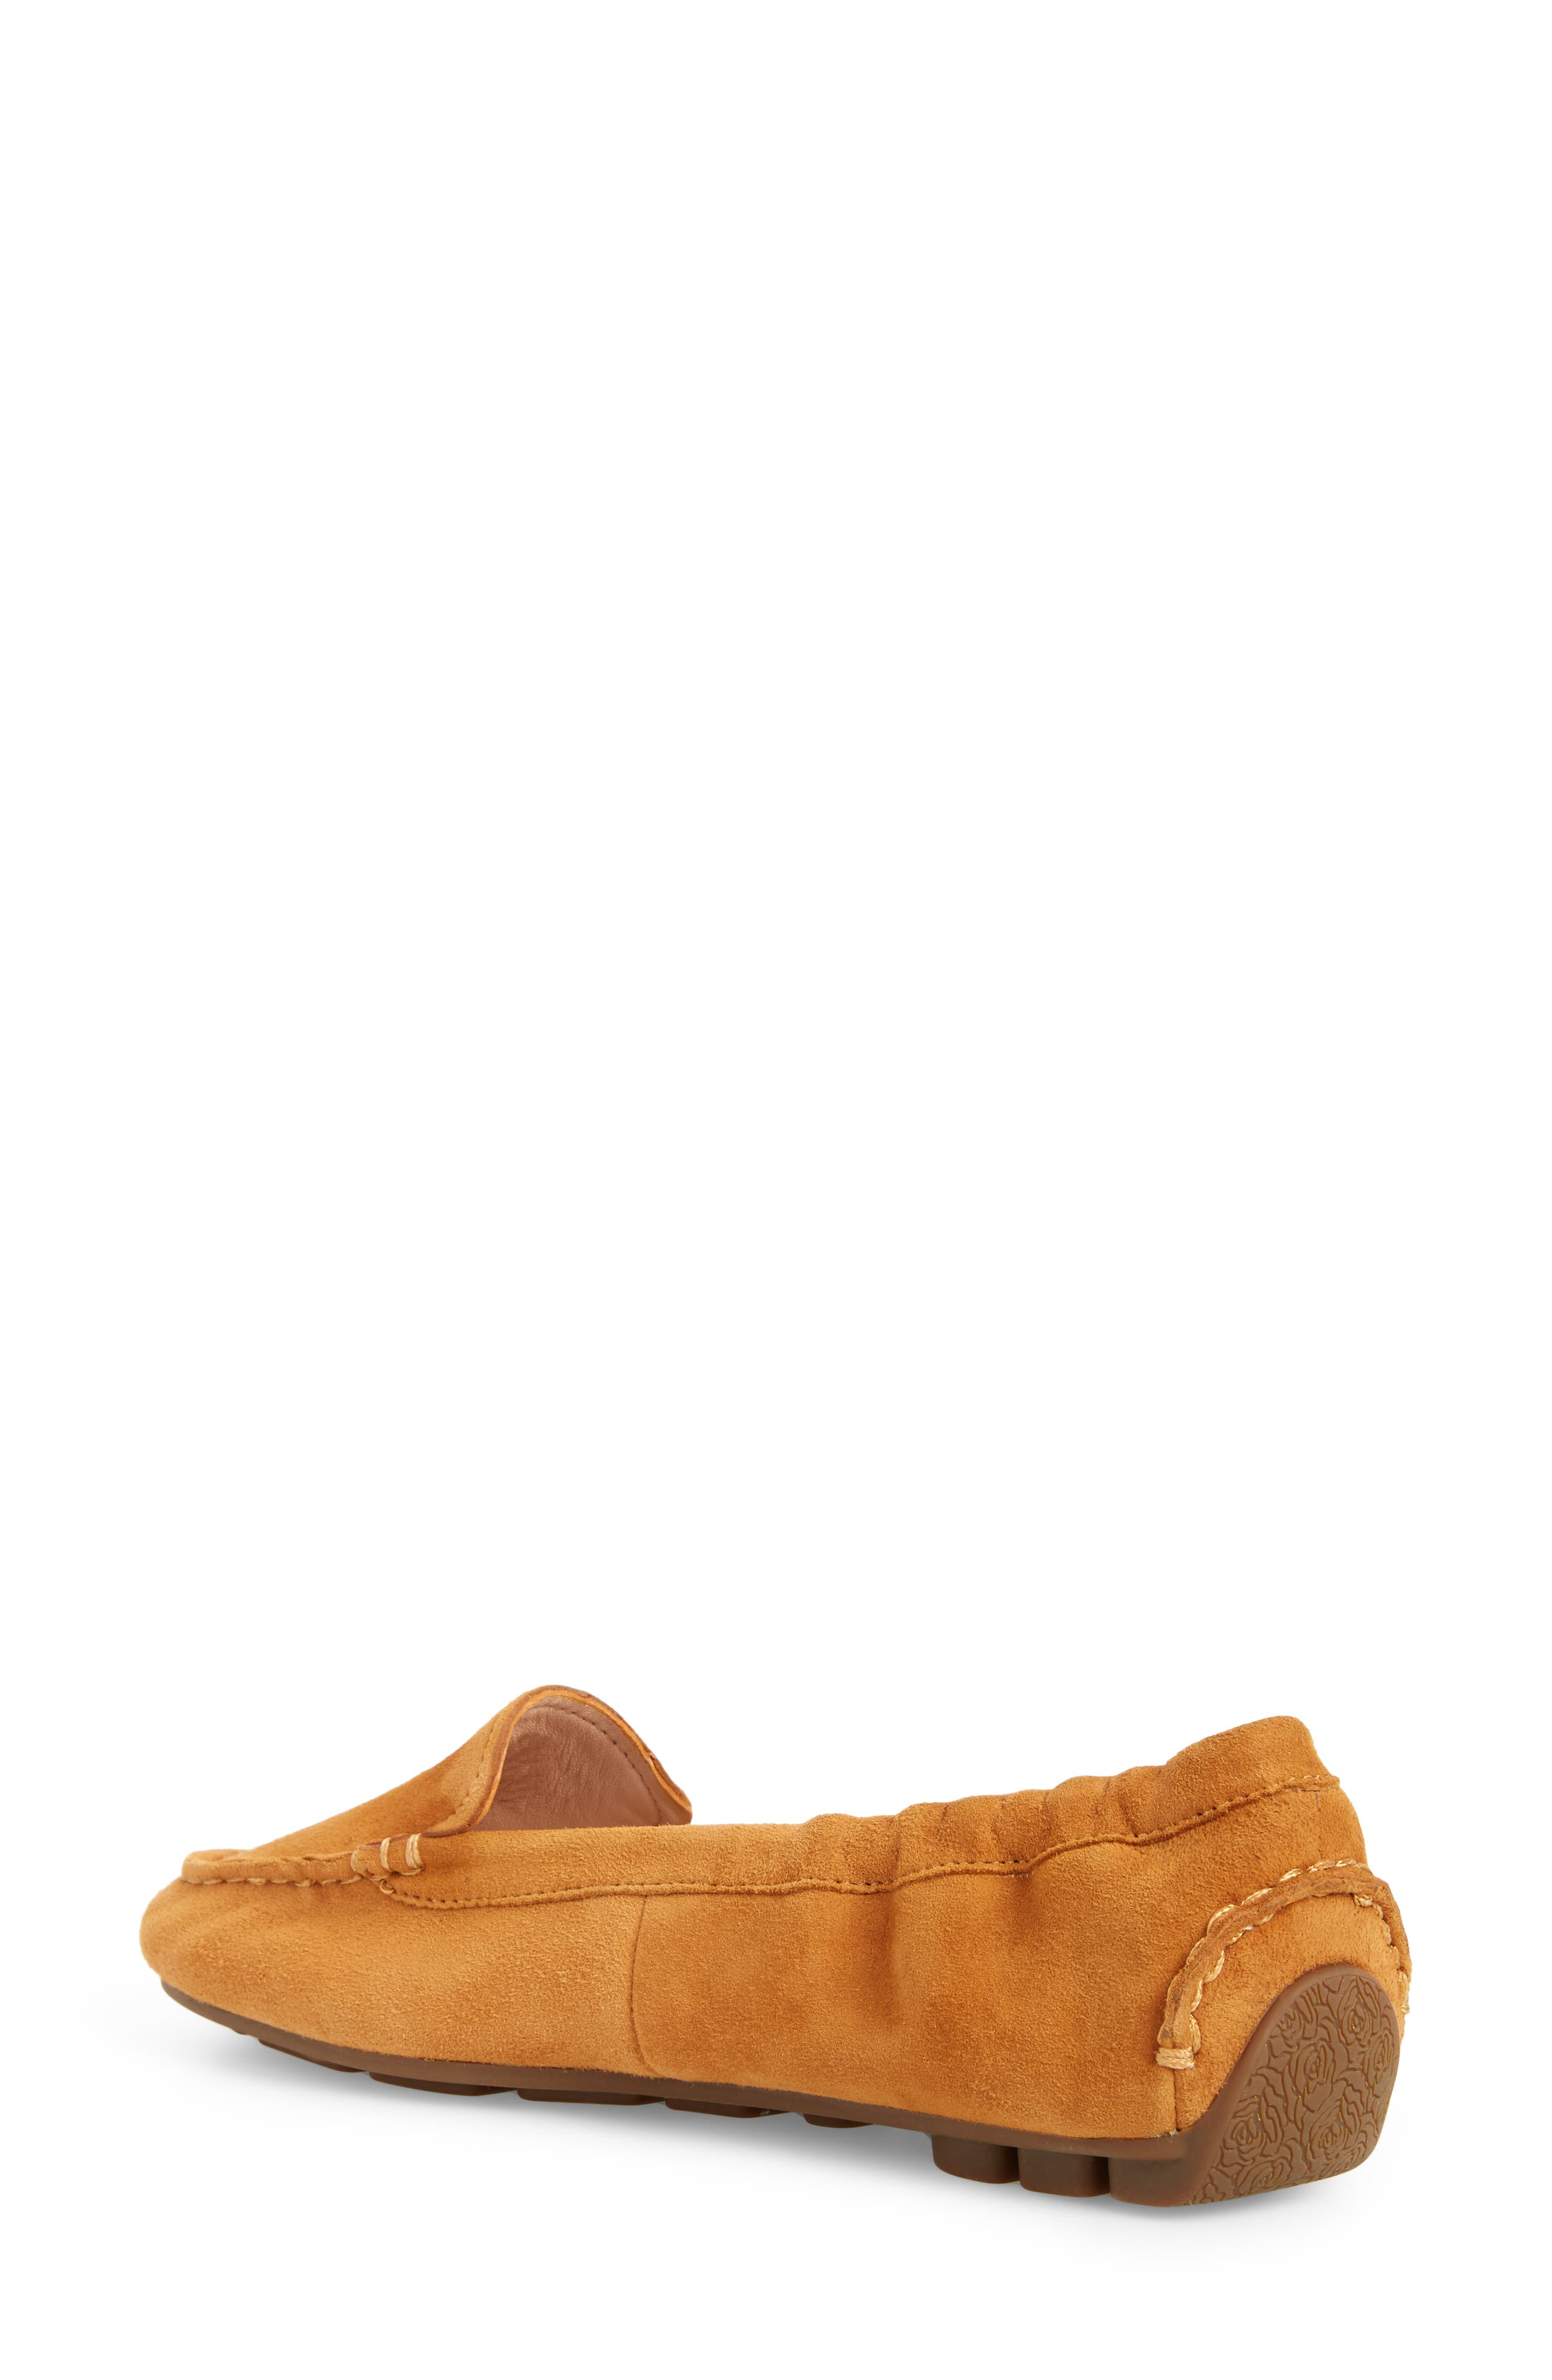 Kristine Loafer,                             Alternate thumbnail 2, color,                             Cuoio Suede